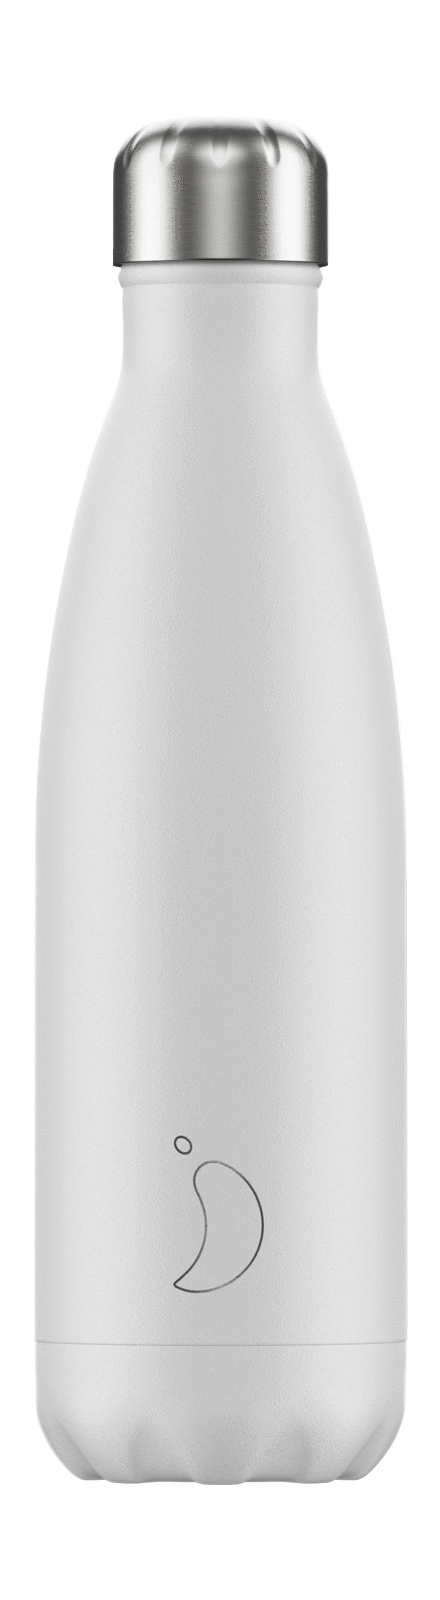 cadeauxwells - 500ml Chilly's Bottle - Monochrome White - Chilly's Bottles - Homewares